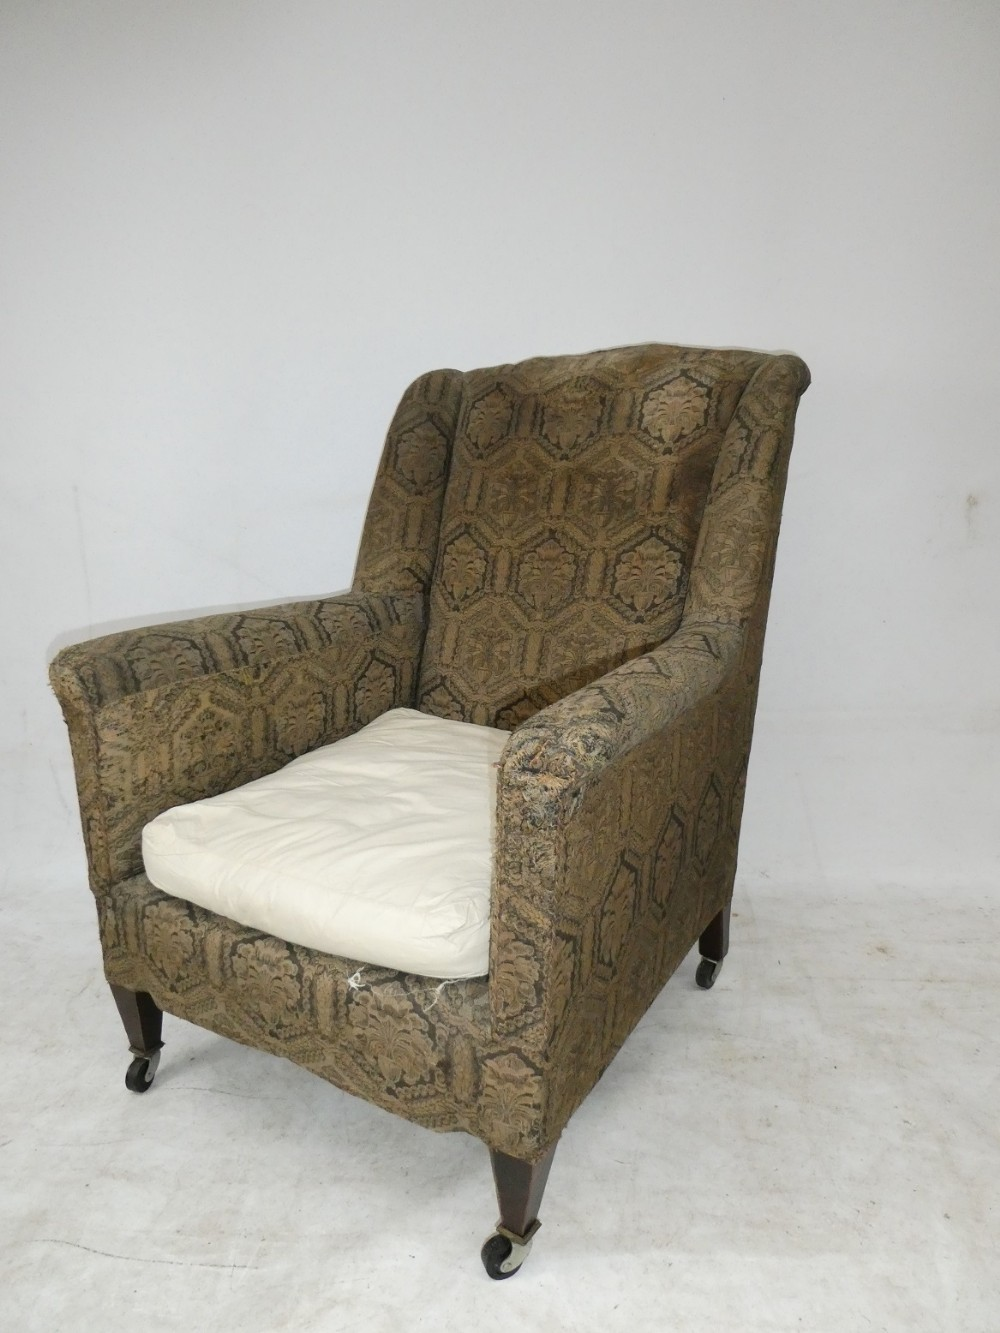 1900s wing arm chair